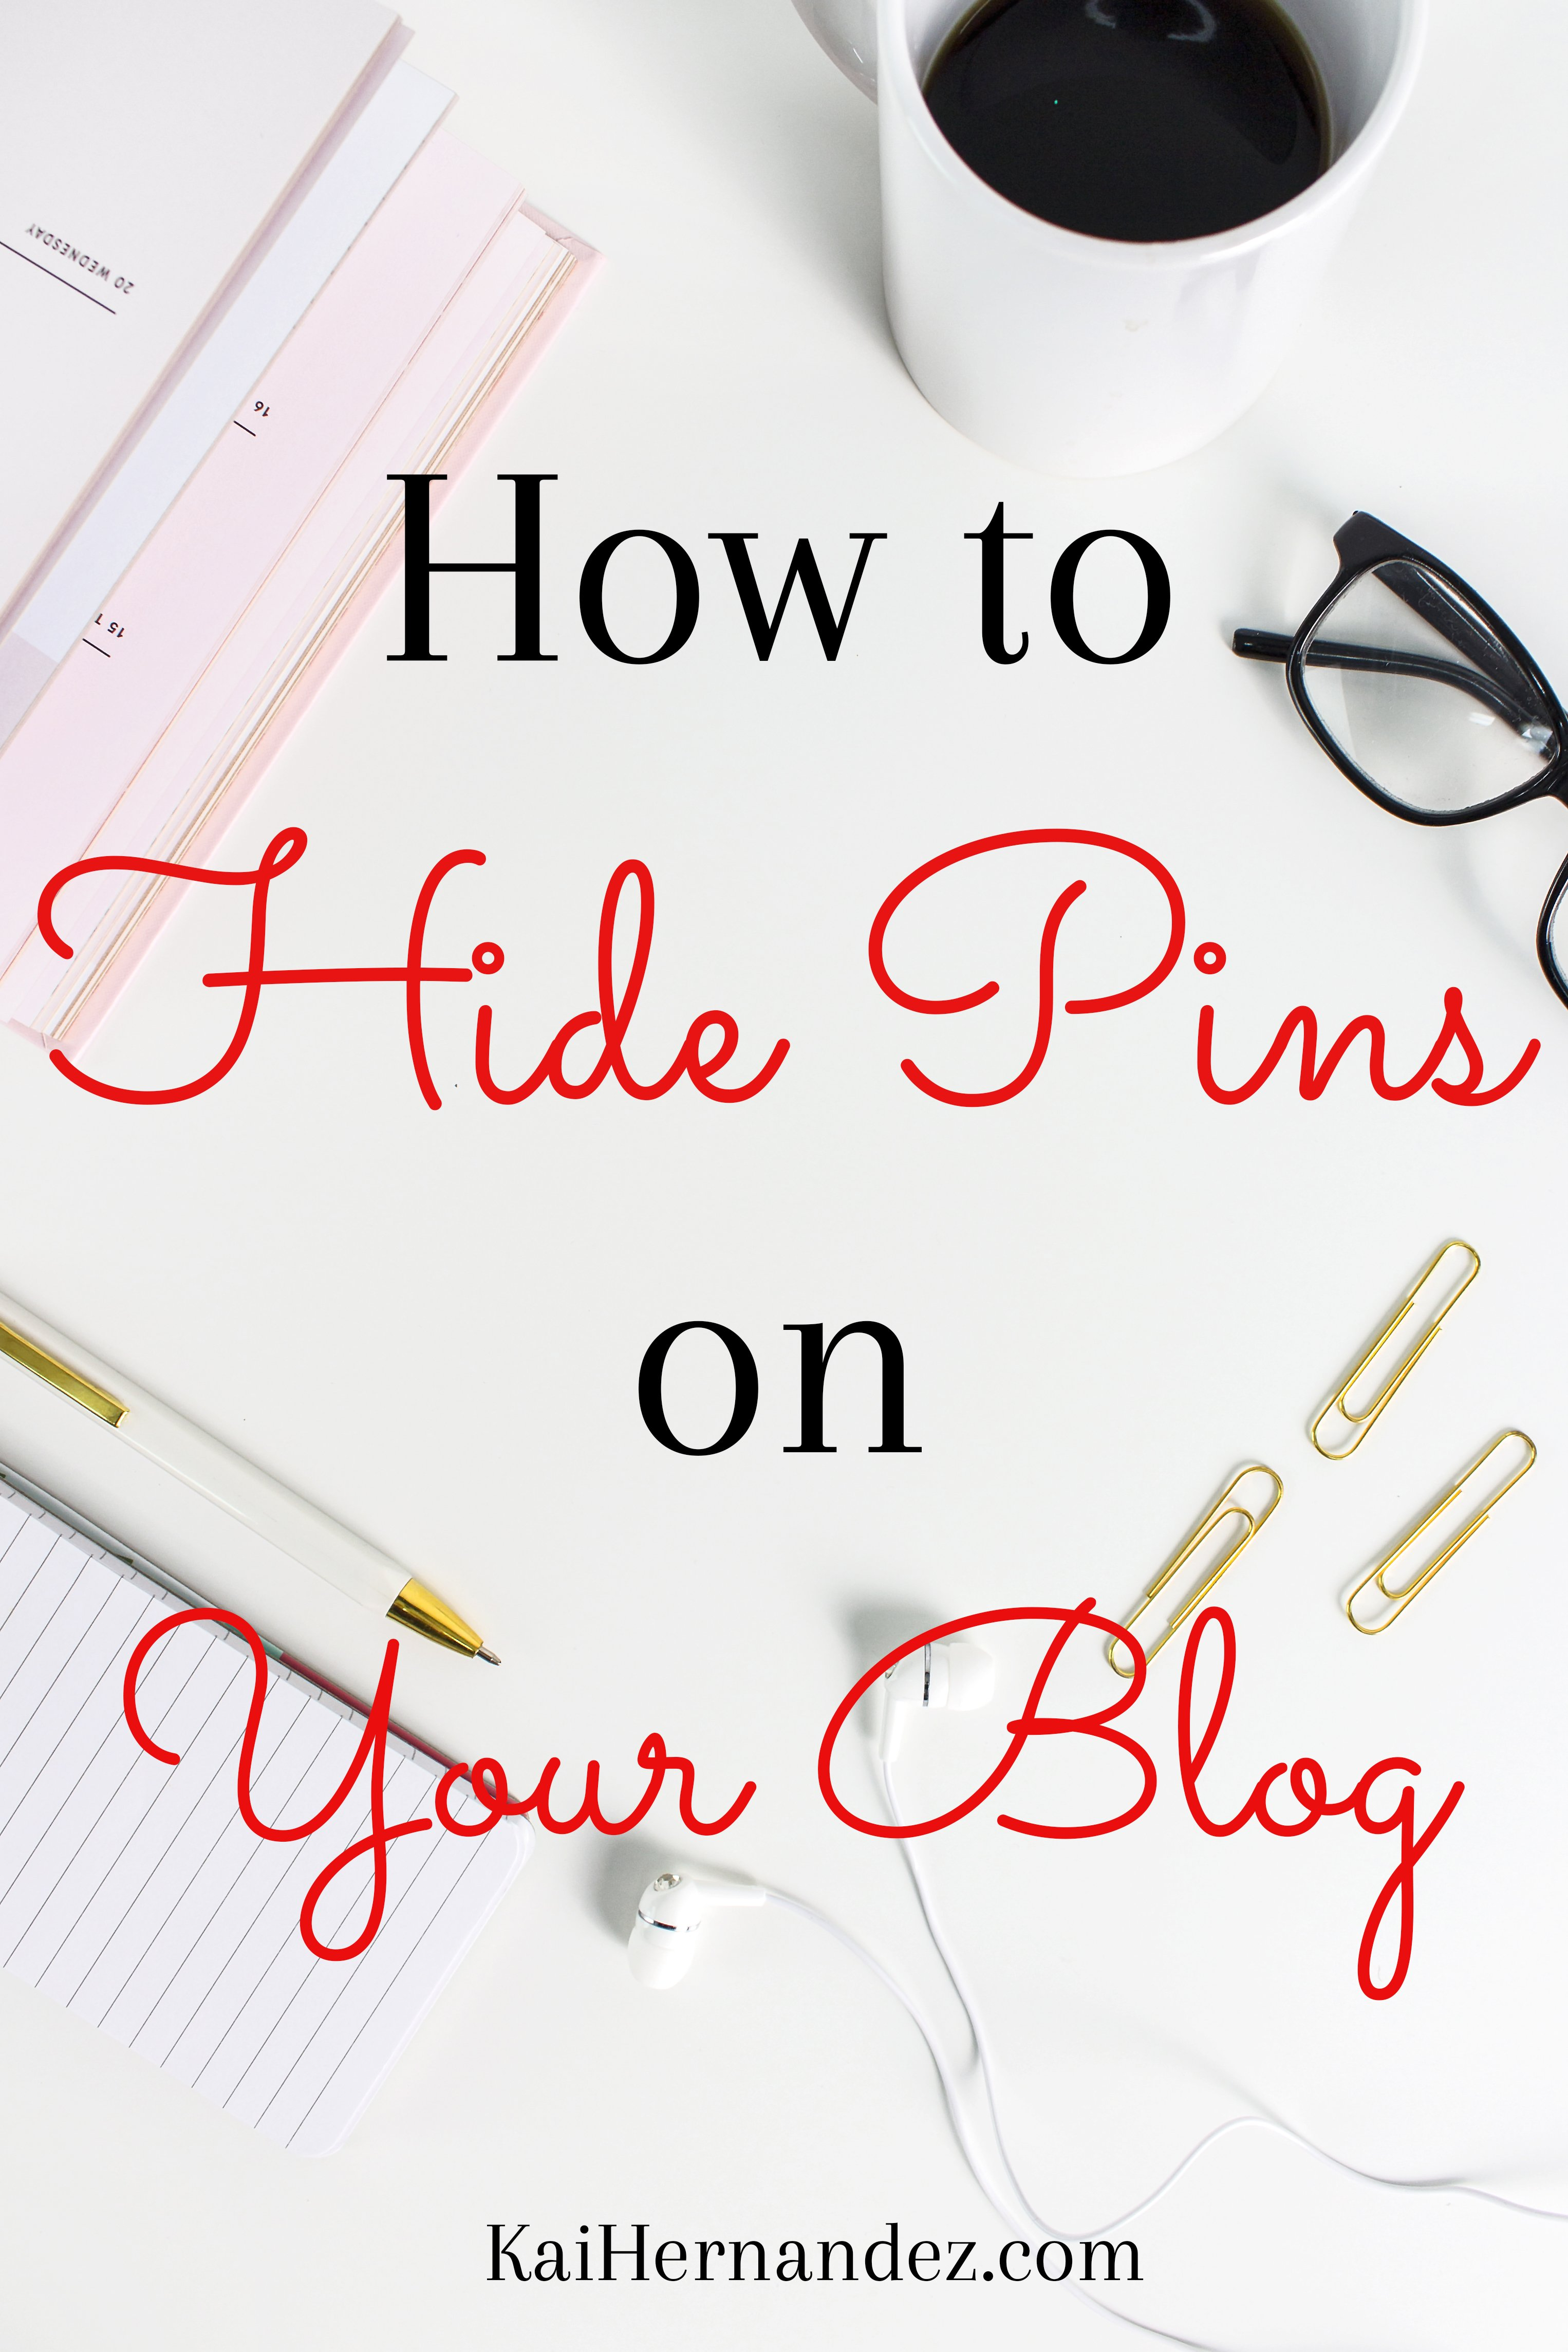 How to Hide Pins on Your Blog | Hide Pinnable Images | Hidden pins in blog | Hide pics on WordPress | Hide Pinterest Images | How to Hide Pins | How to Hit Pinnable Images | Hidden Pins | Secret Images on Your Blog | Adding Hidden Pics to your Post | Pinterest Marketing | Make Pins | Promote Your Blog | Social Media Marketing | Promote on Pinterest